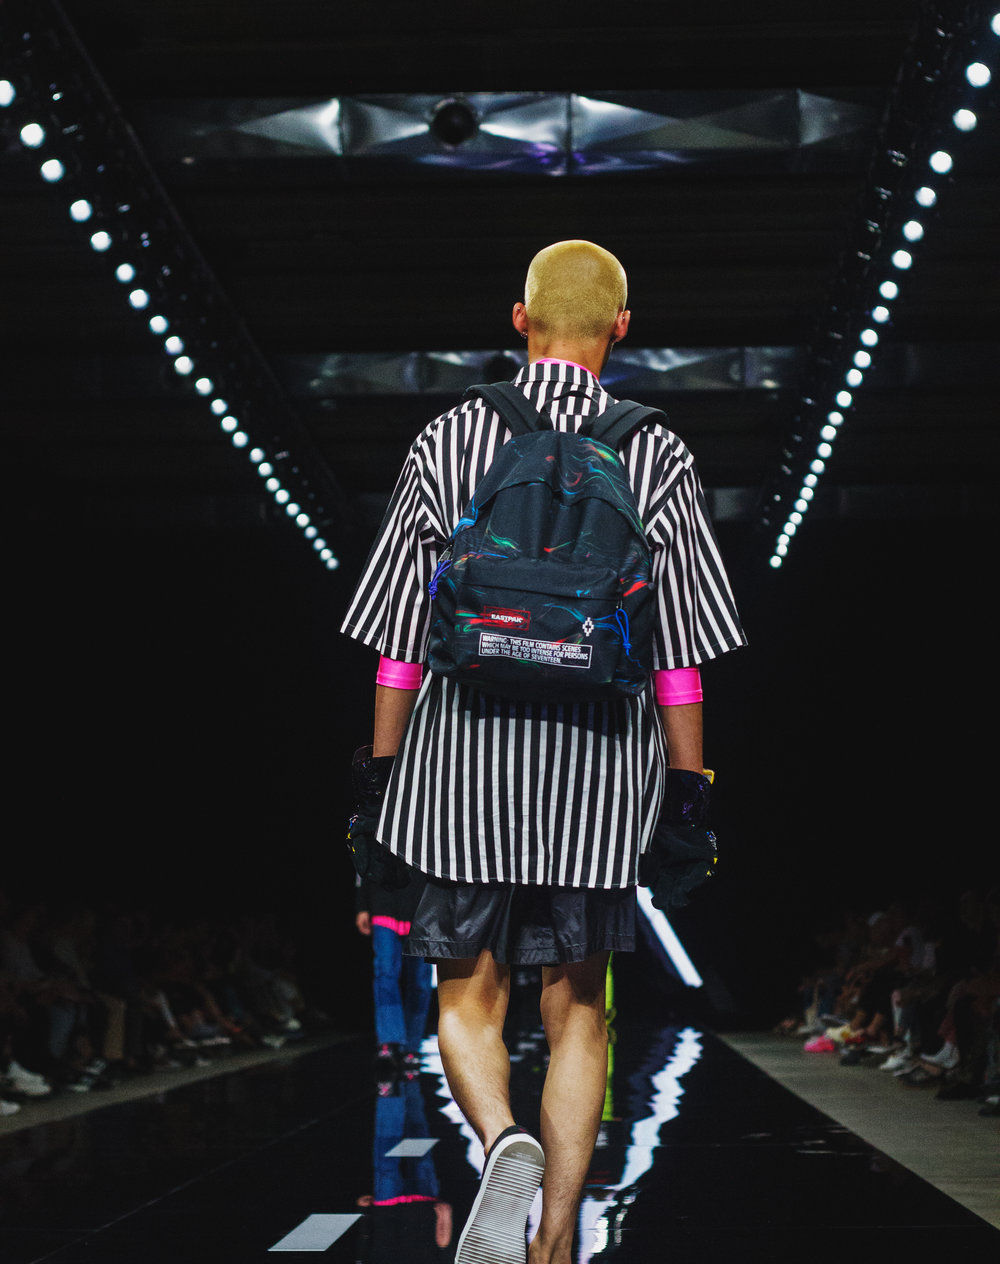 Eastpak x Marcelo Burlon Collaboration